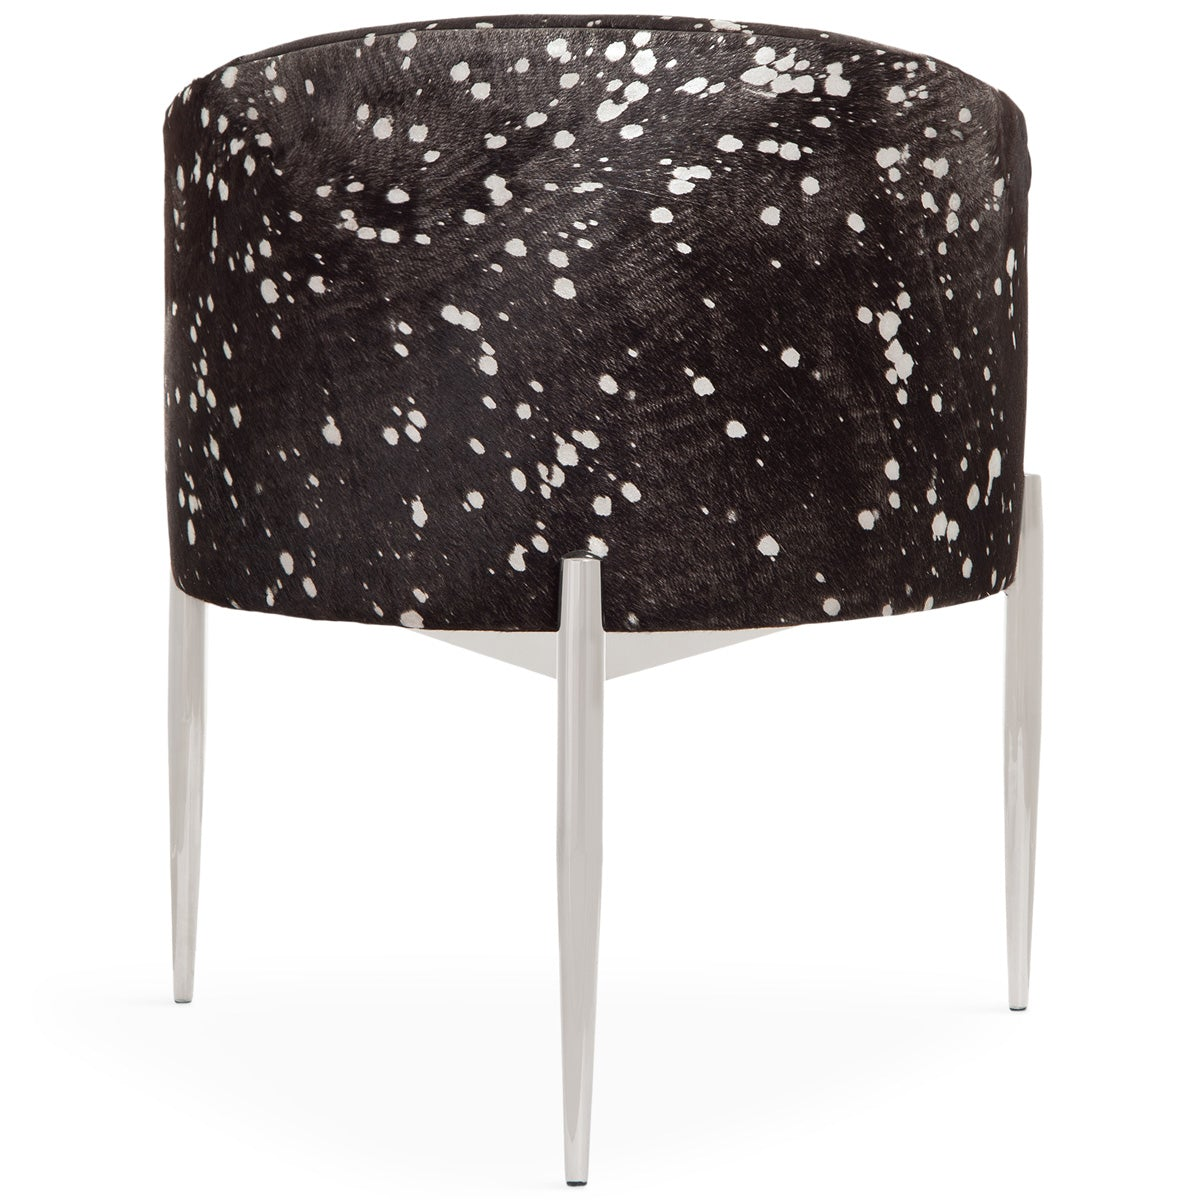 Astonishing Art Deco Dining Chair Silver Speckled Cowhide Dining Chair Bralicious Painted Fabric Chair Ideas Braliciousco